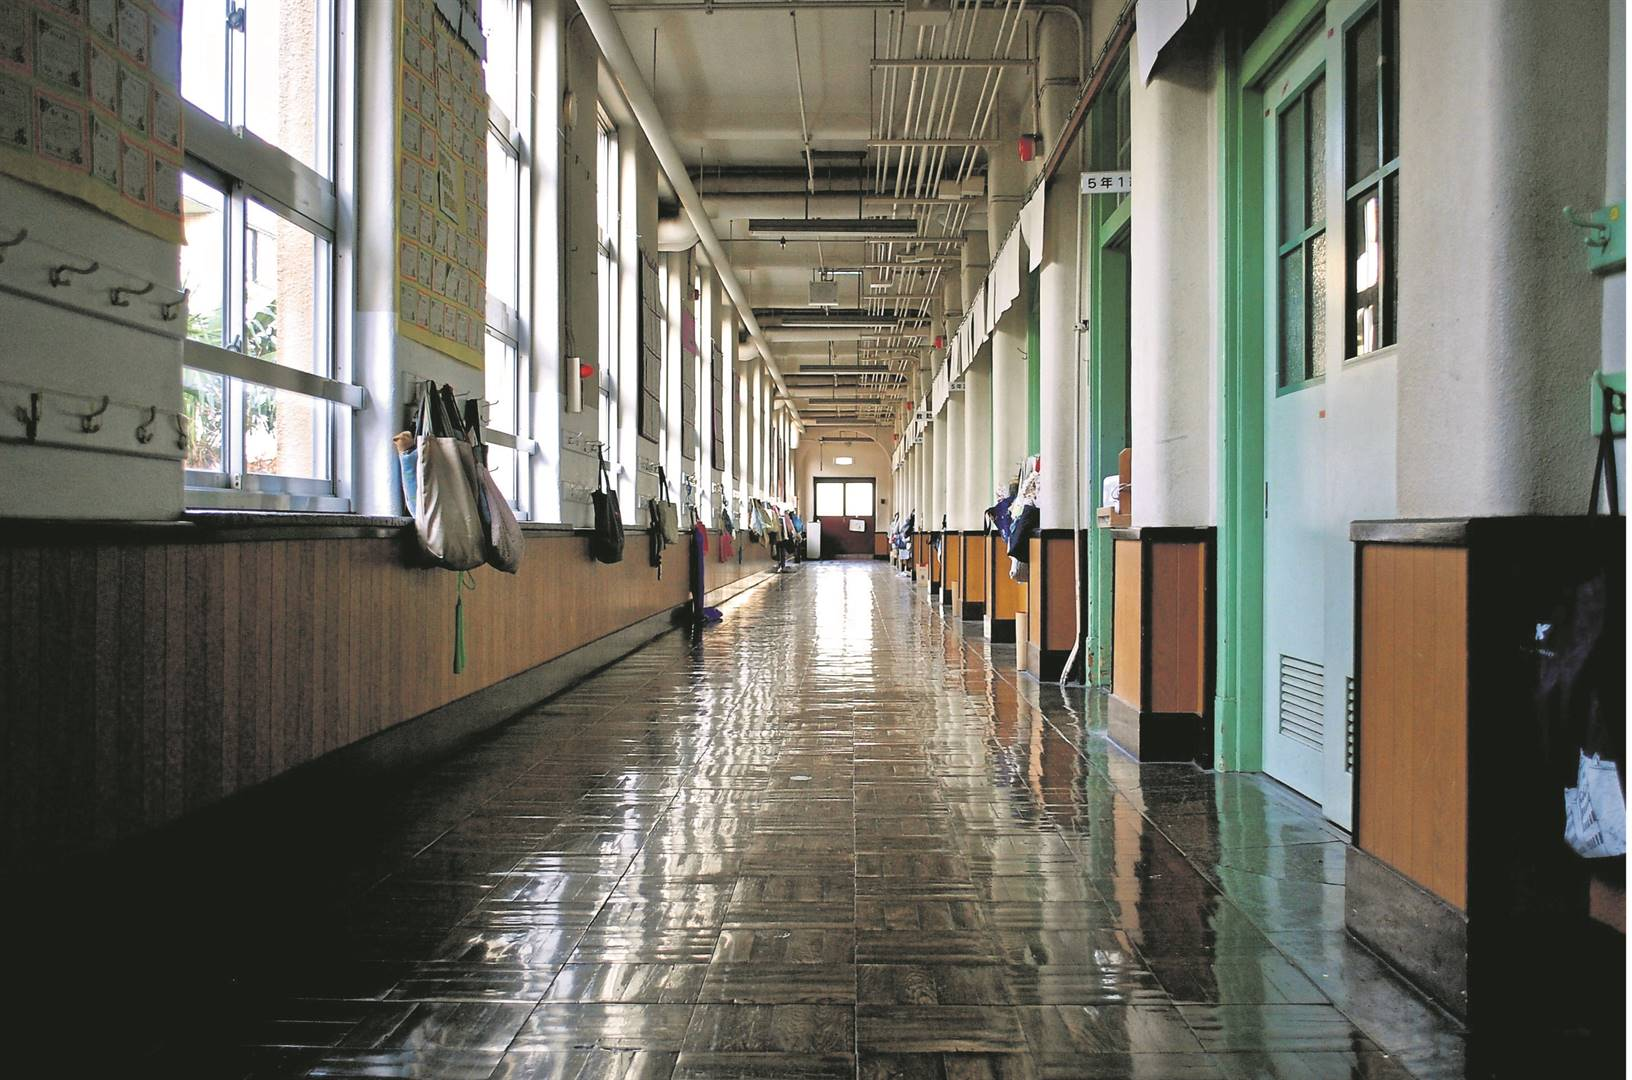 38 schools in the Western Cape were burgled and vandalised during school holidays.